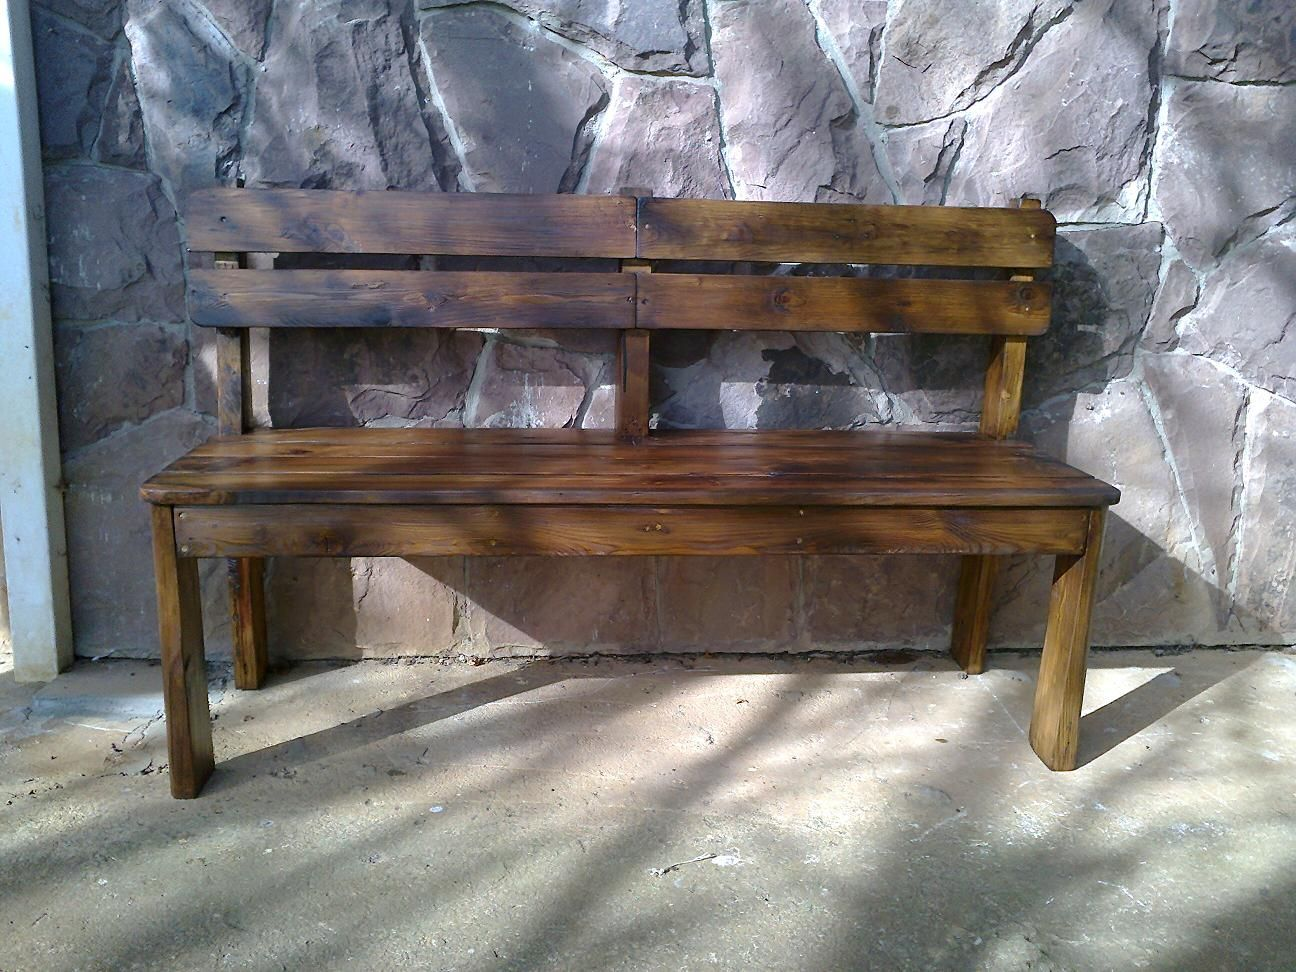 palets | Muebles Auxiliares de Madera: Hecho con Palets | palets ...